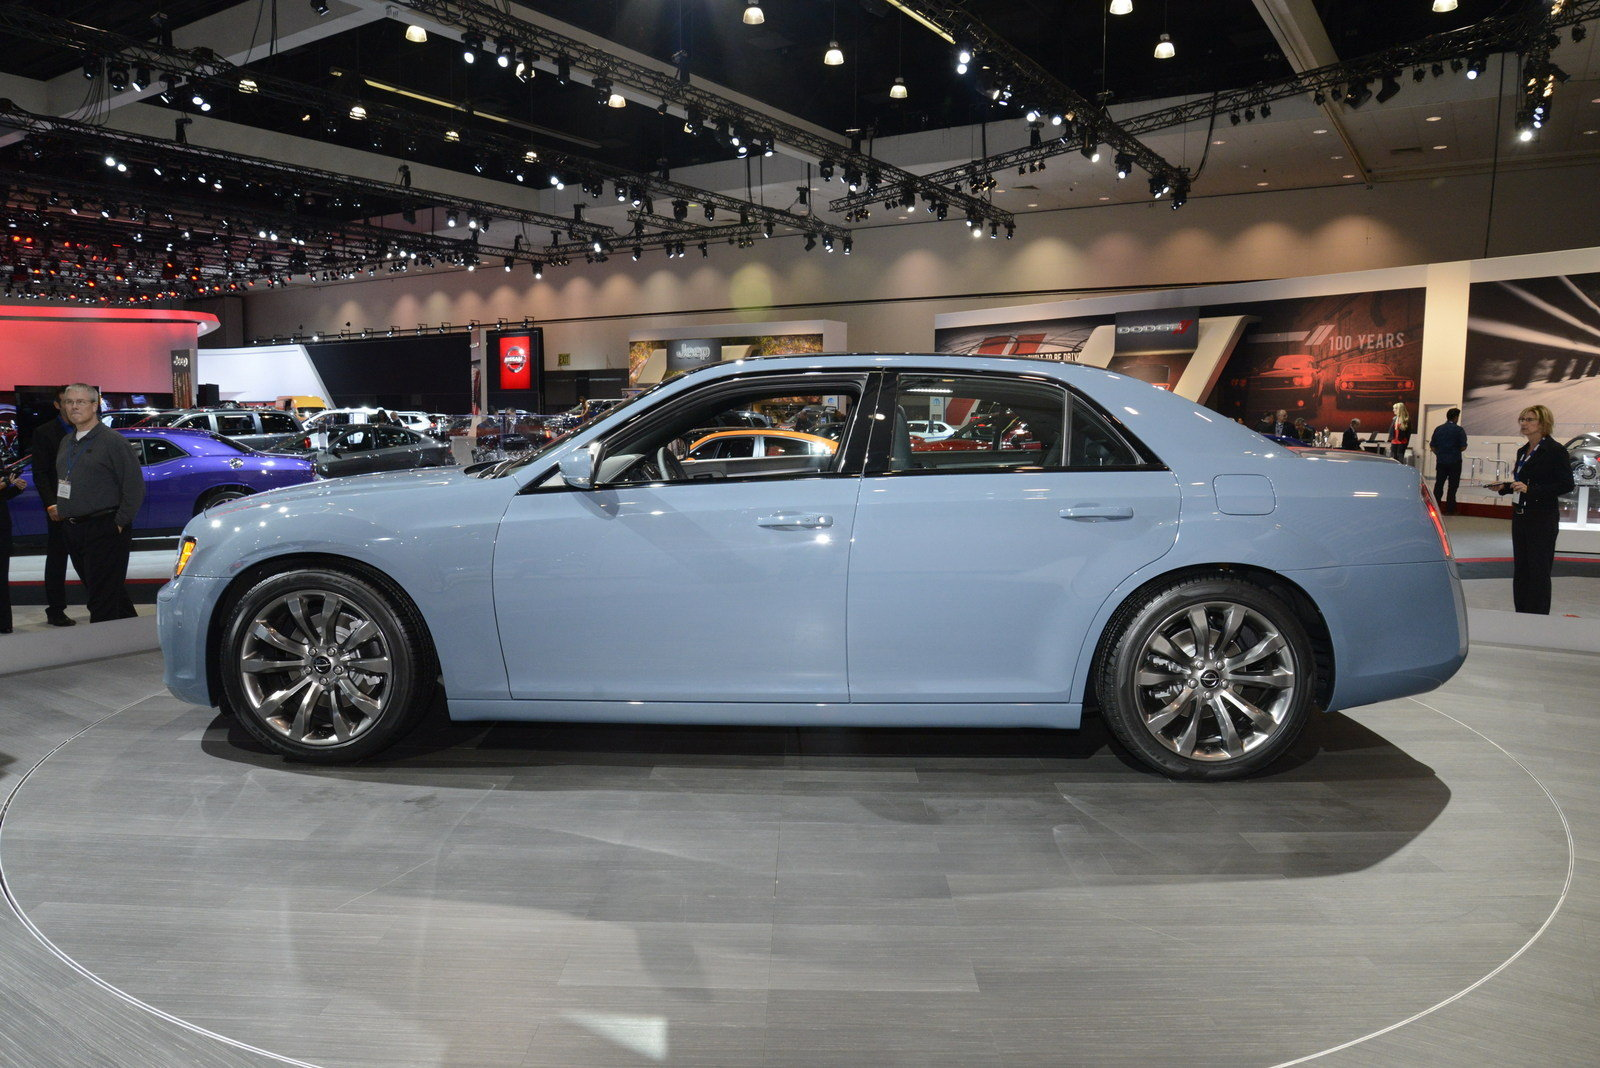 2014 chrysler 300s picture 533518 car review top speed. Black Bedroom Furniture Sets. Home Design Ideas